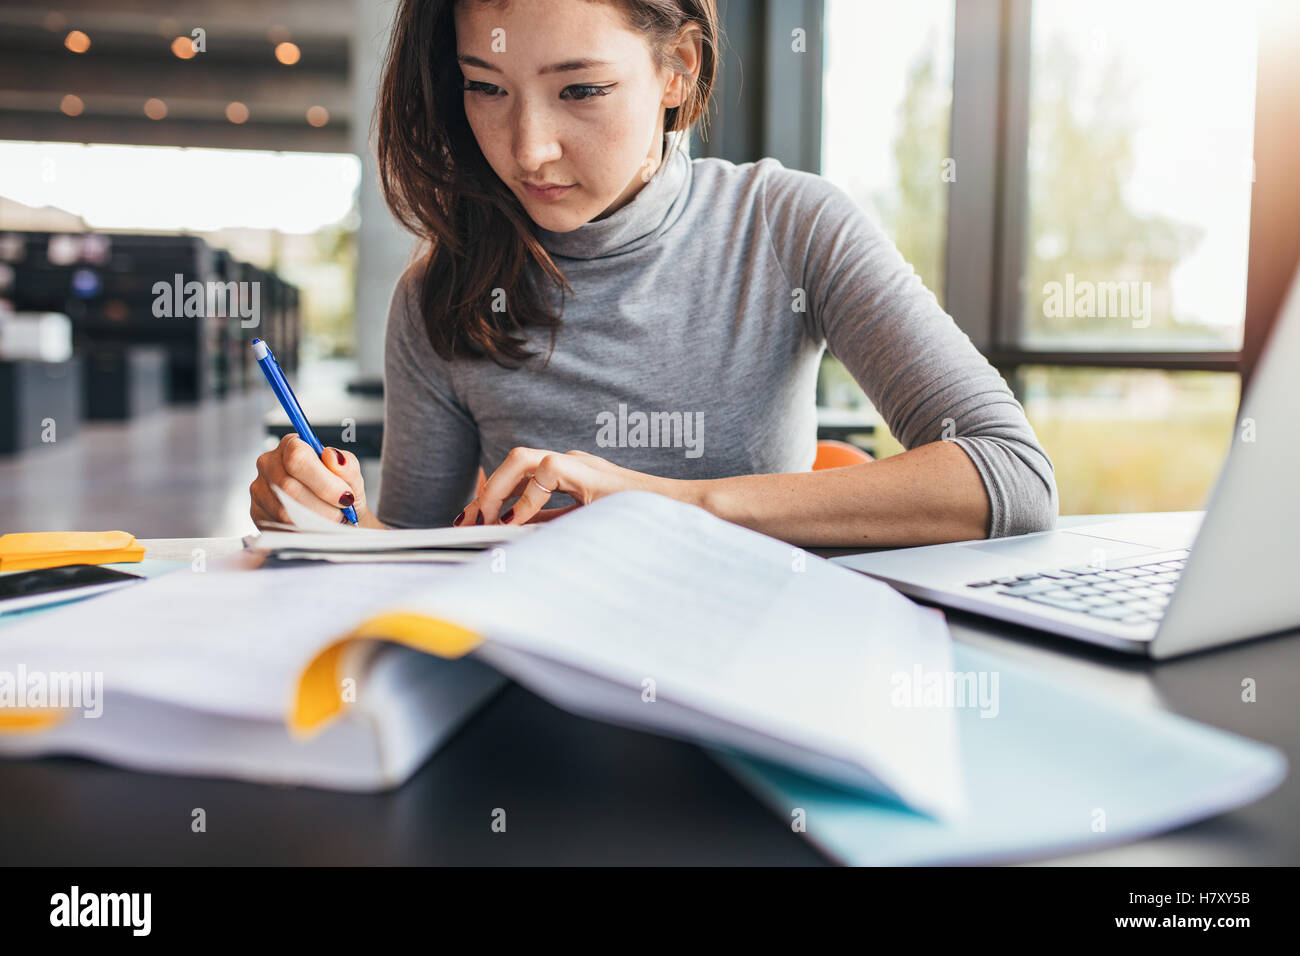 Close up image of a young female student doing assignments in library. Asian woman taking notes from textbook. - Stock Image